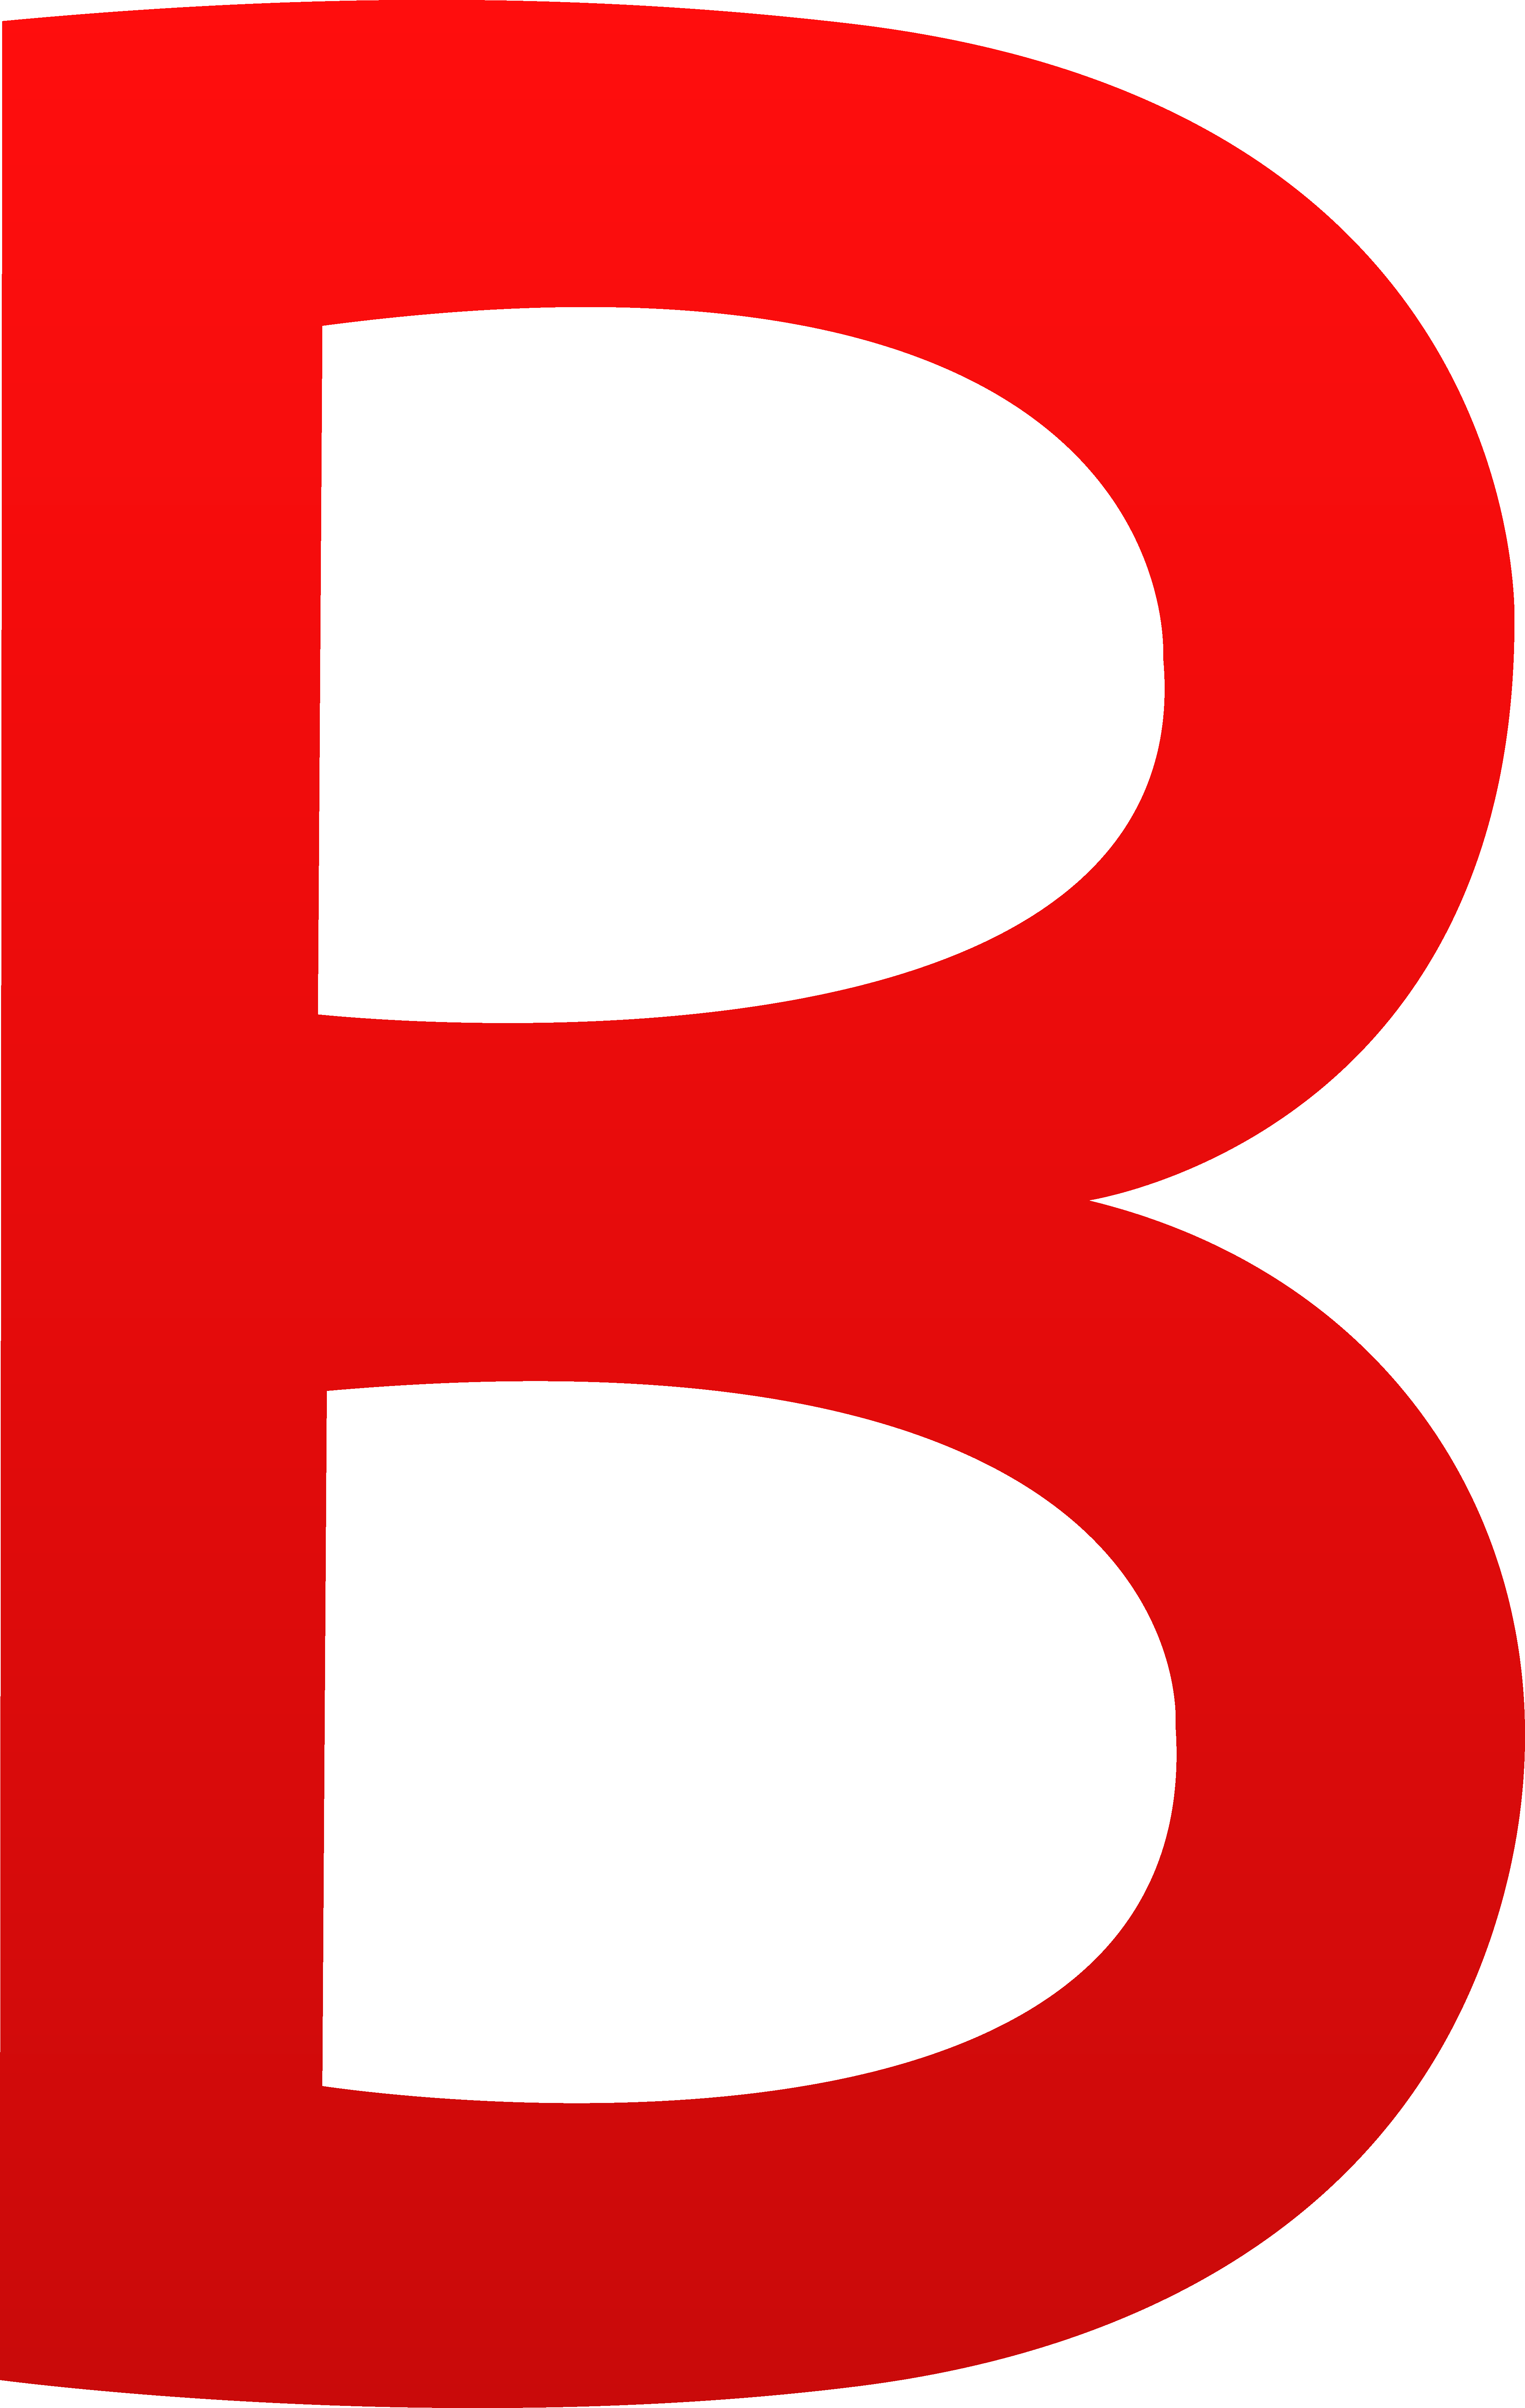 Red Letter B Clipart